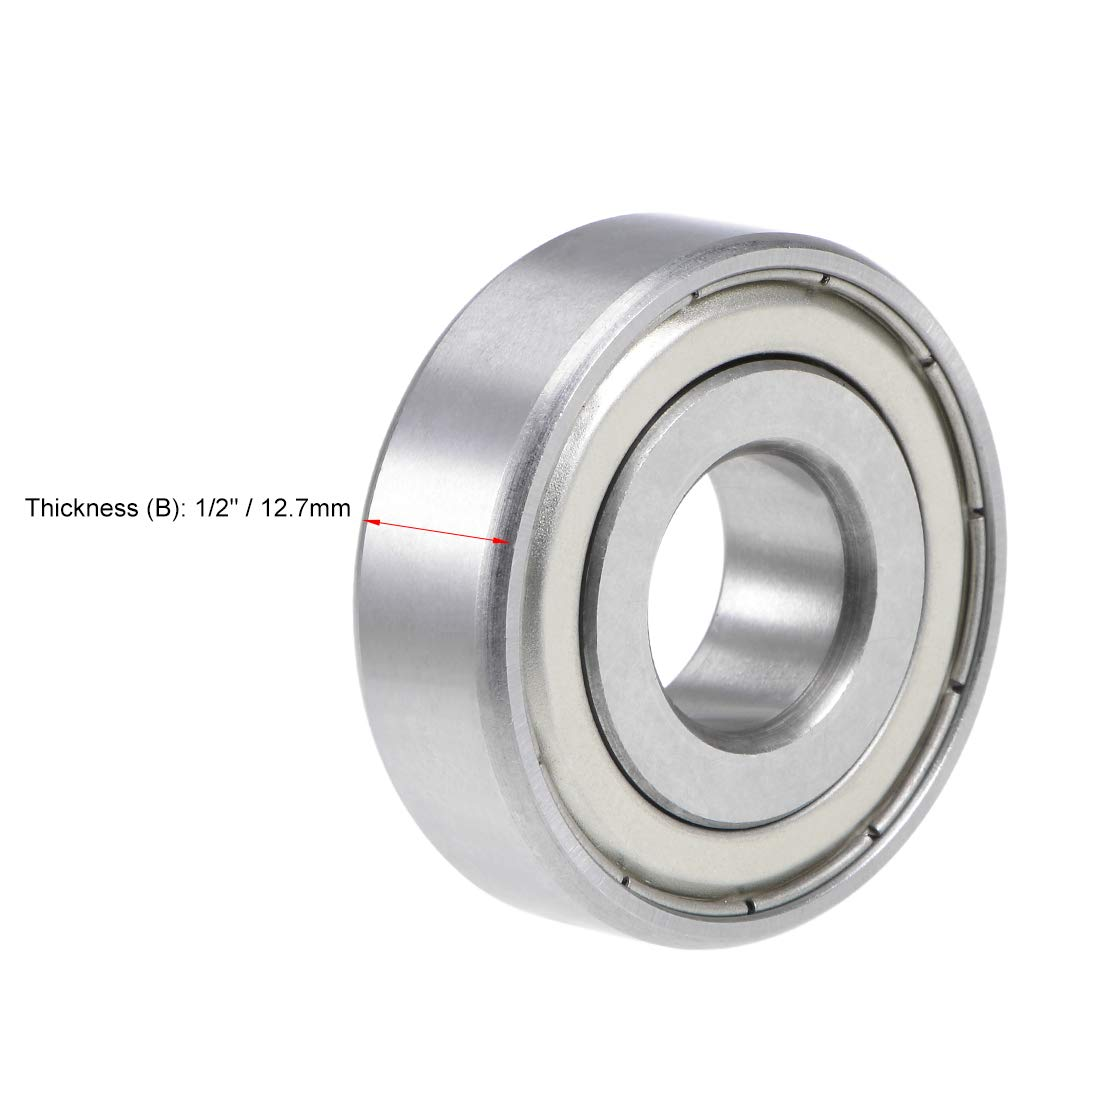 Lowest Friction 4 Radial Ball Bearing.Rubber. 1//2 X 3//4 X 5//32 1//2 inch bore